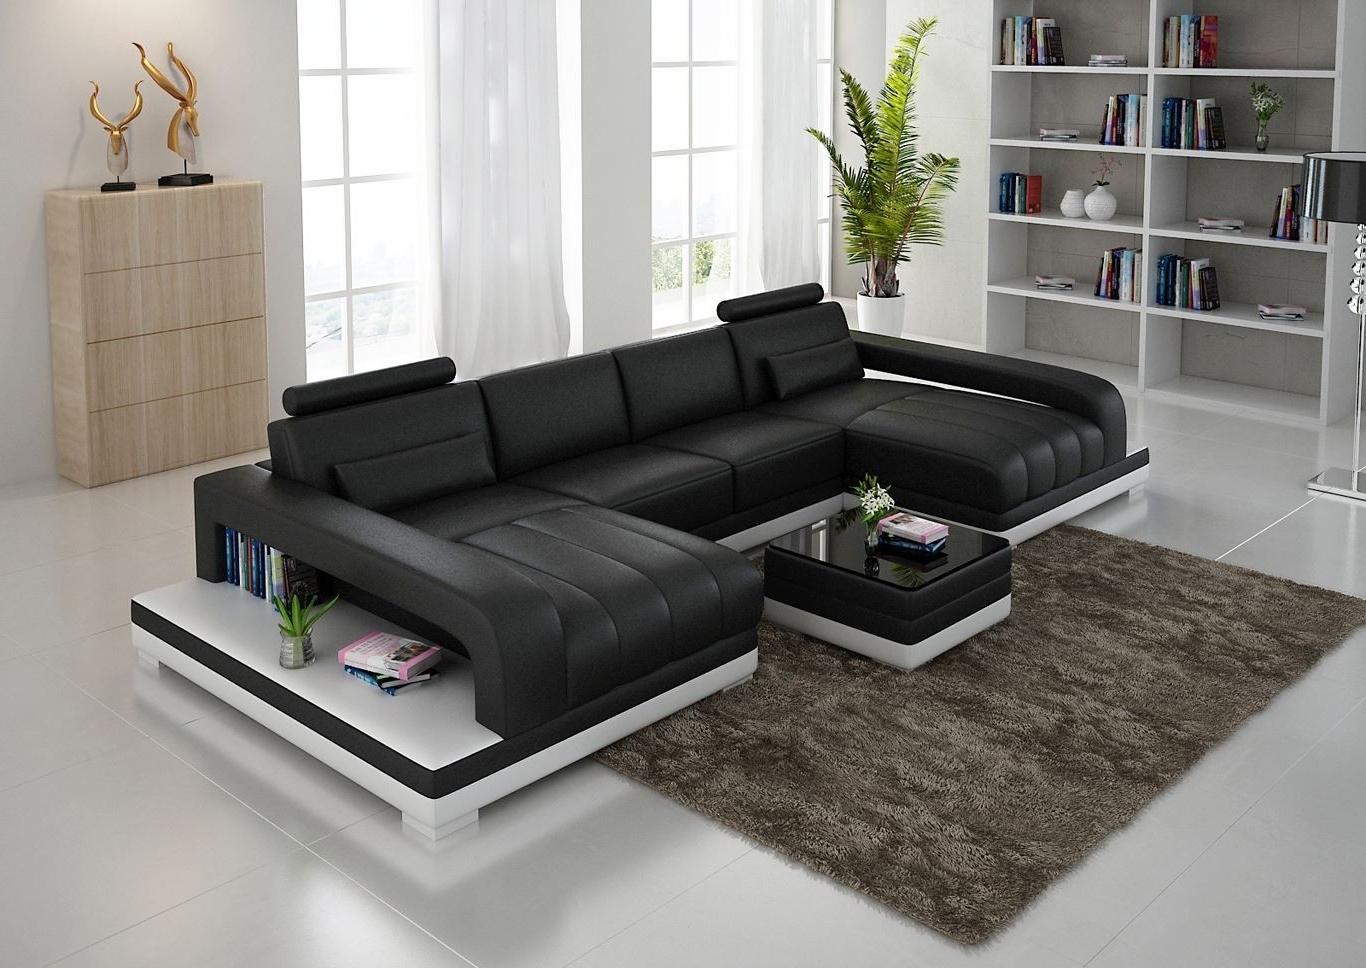 Latest Lounge Ii 2 Piece Left Arm Double Chaise Sectional Sofa Crate With Pertaining To Double Chaise Lounge Sofas (View 13 of 15)